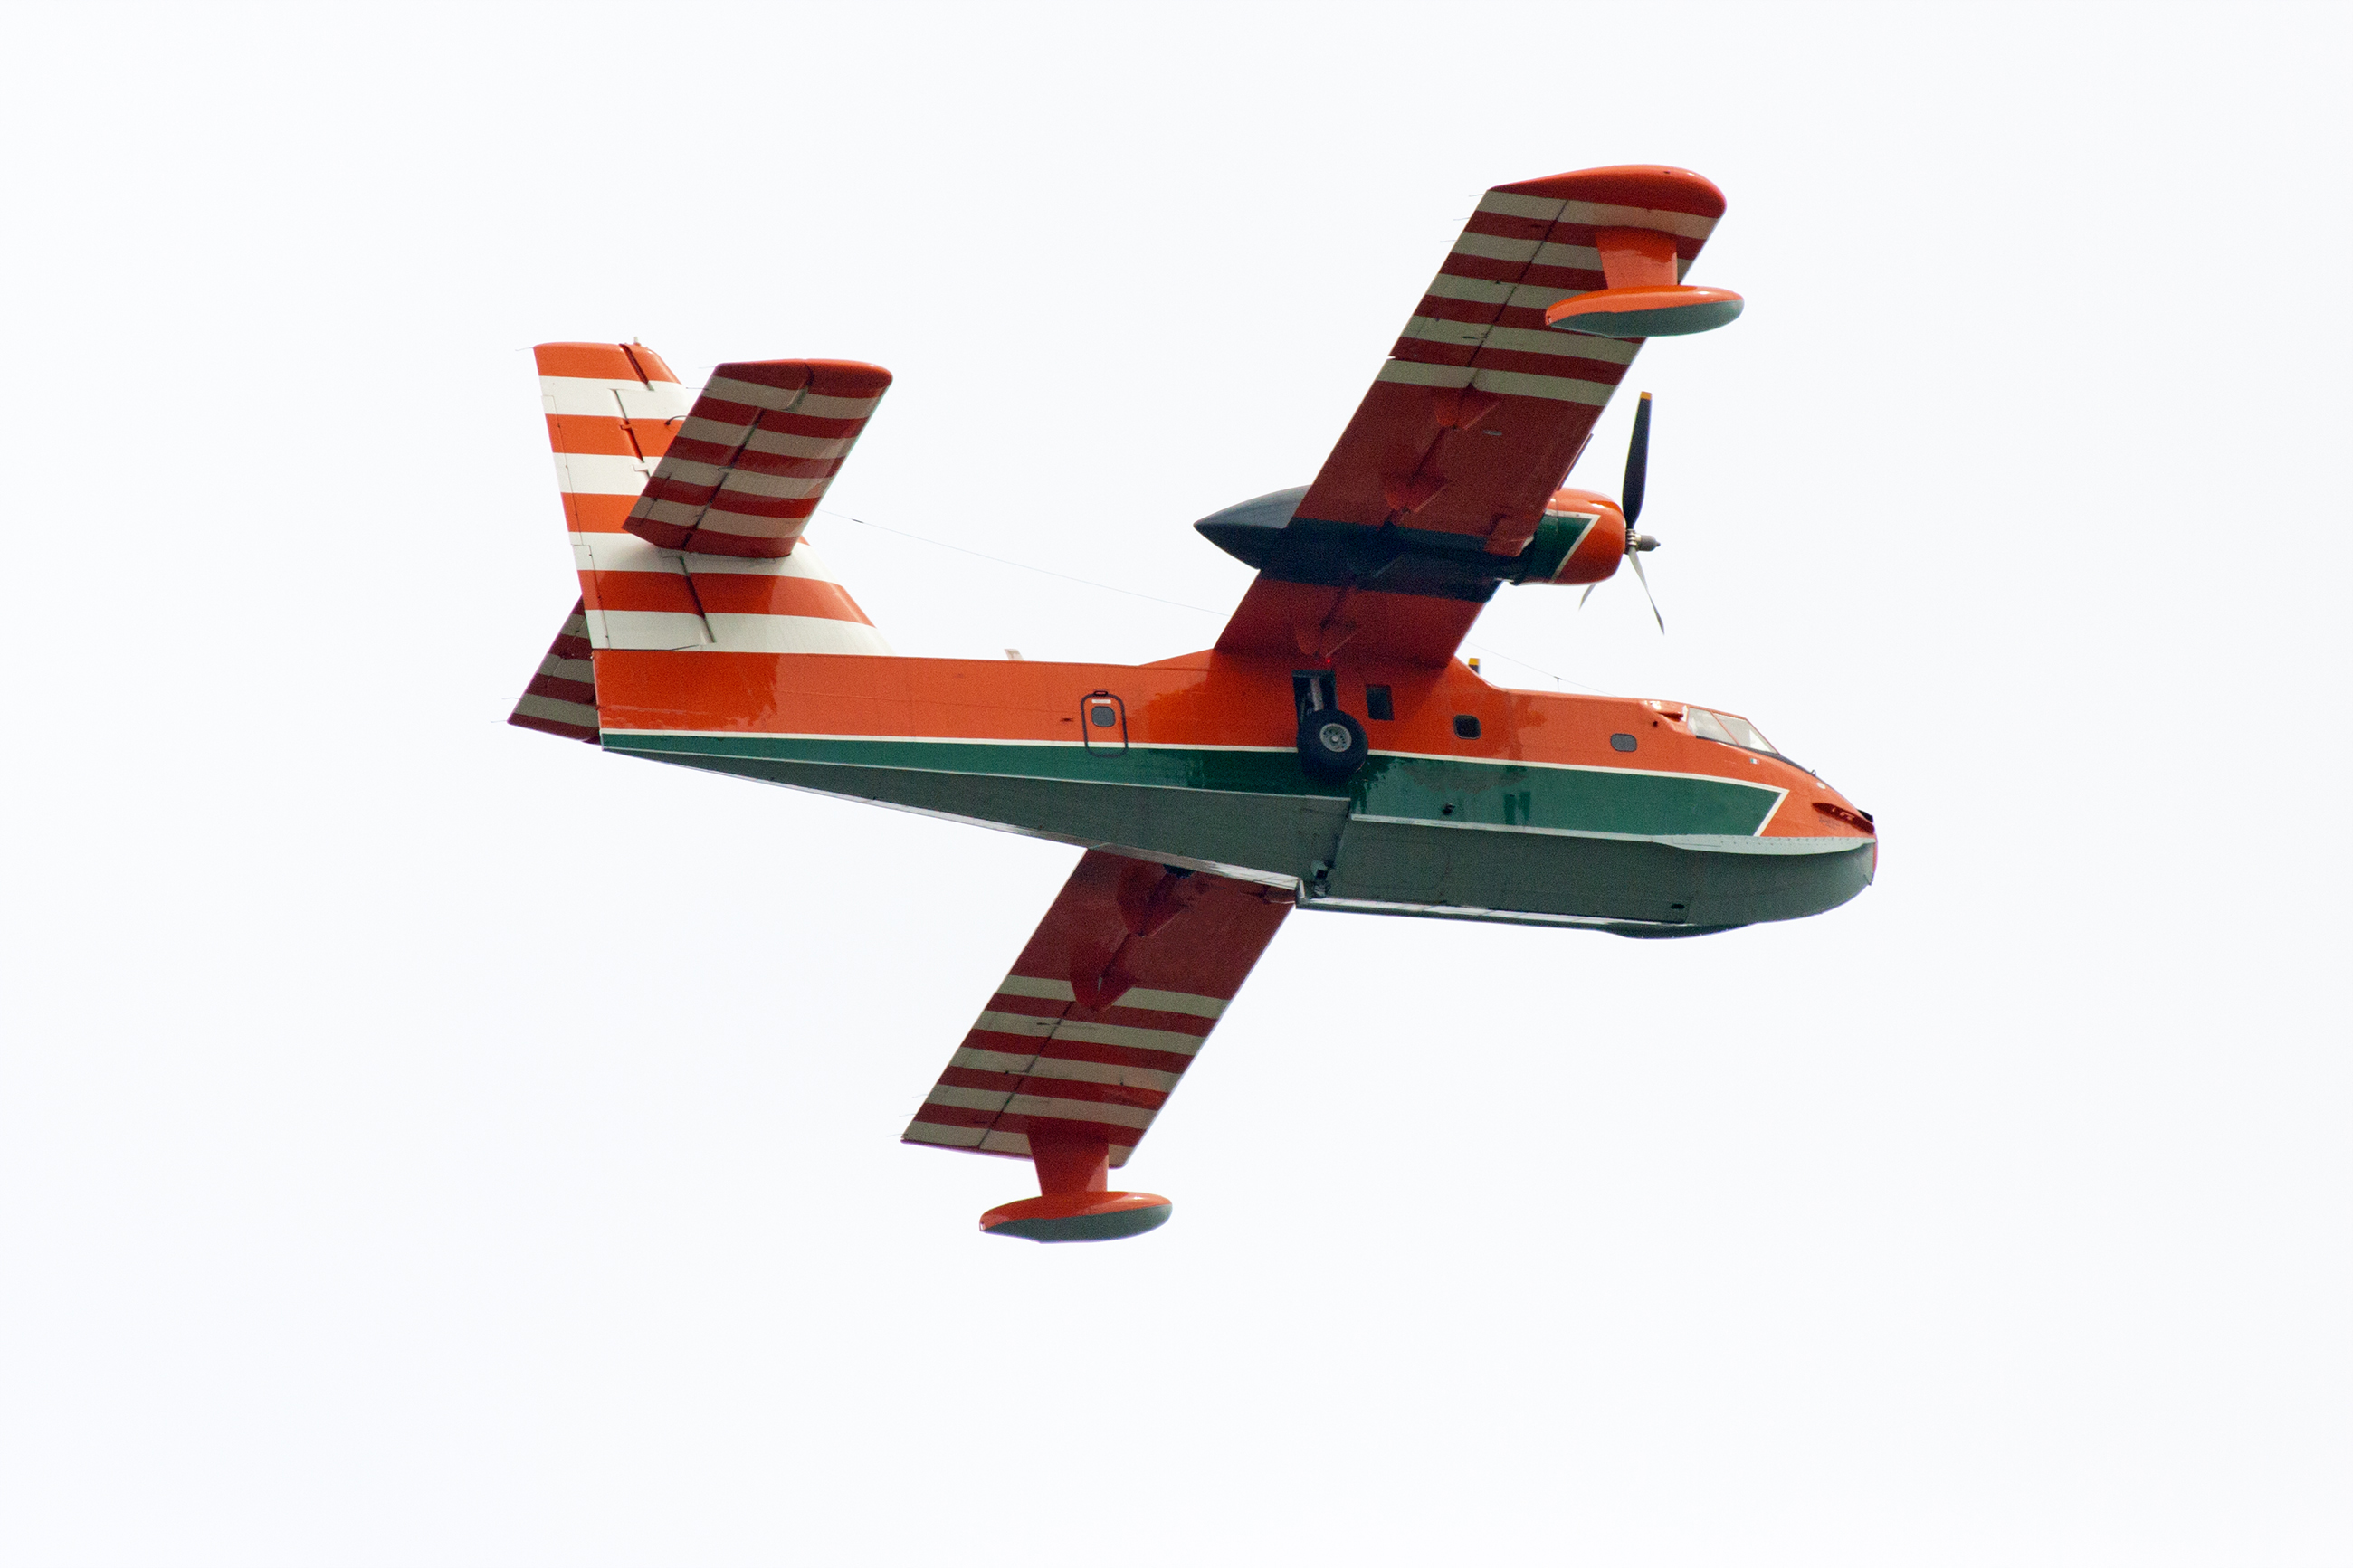 Water bomber, Aeroplane, Disaster, Sky, Propeller, HQ Photo